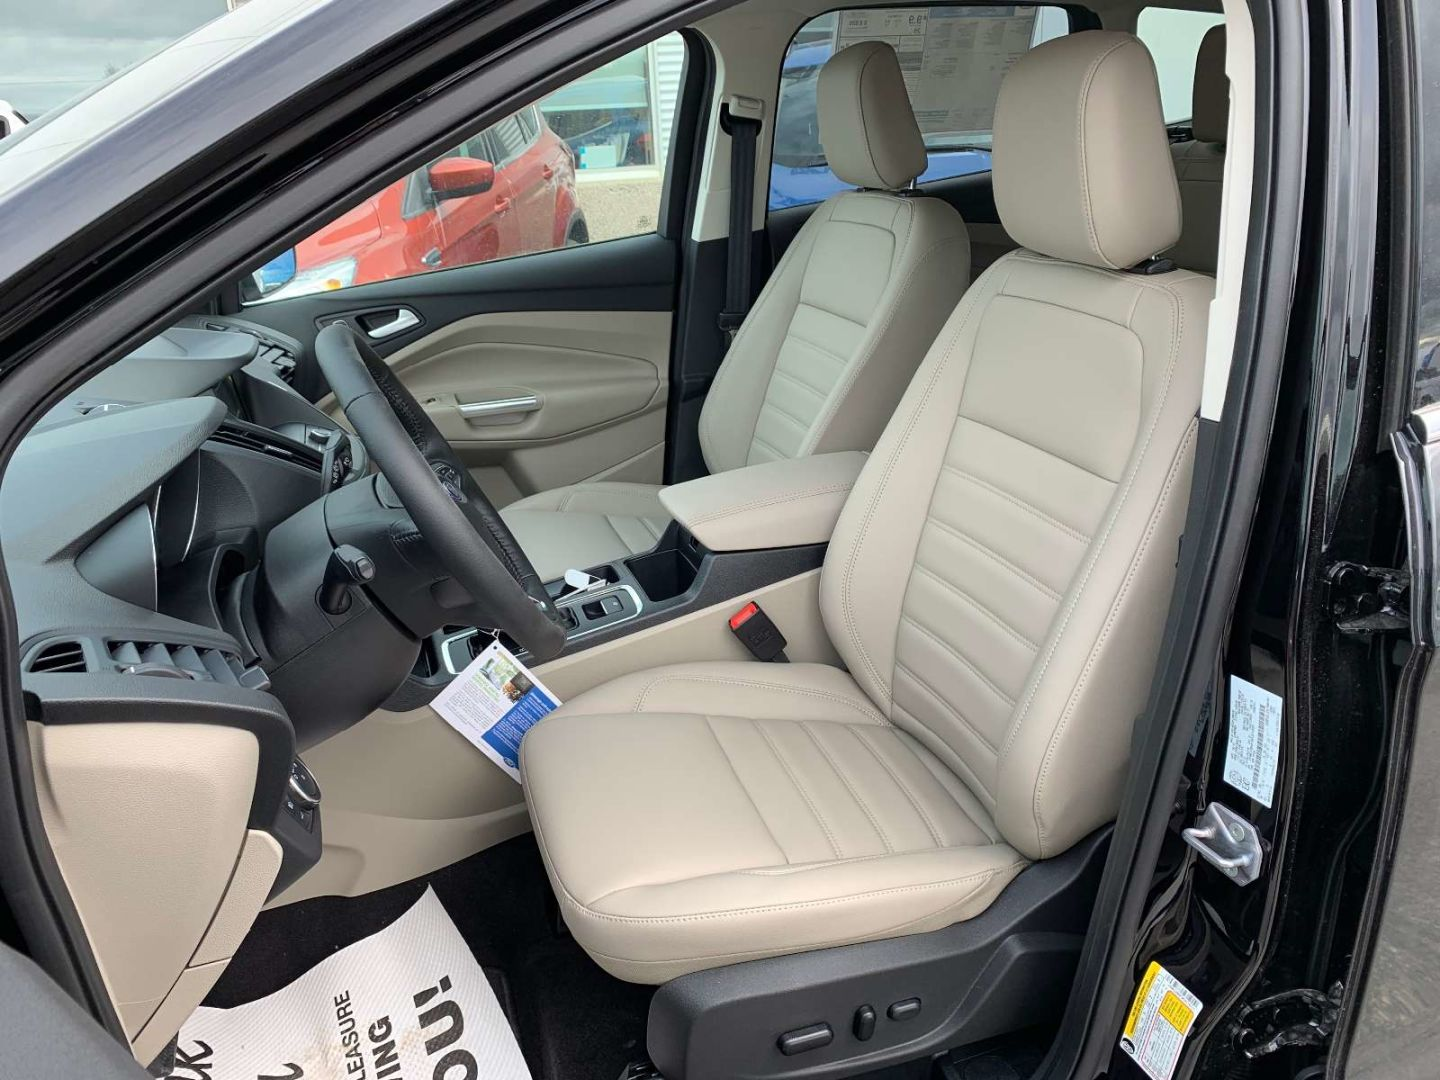 2019 Ford Escape SEL for sale in Hay River, Northwest Territories